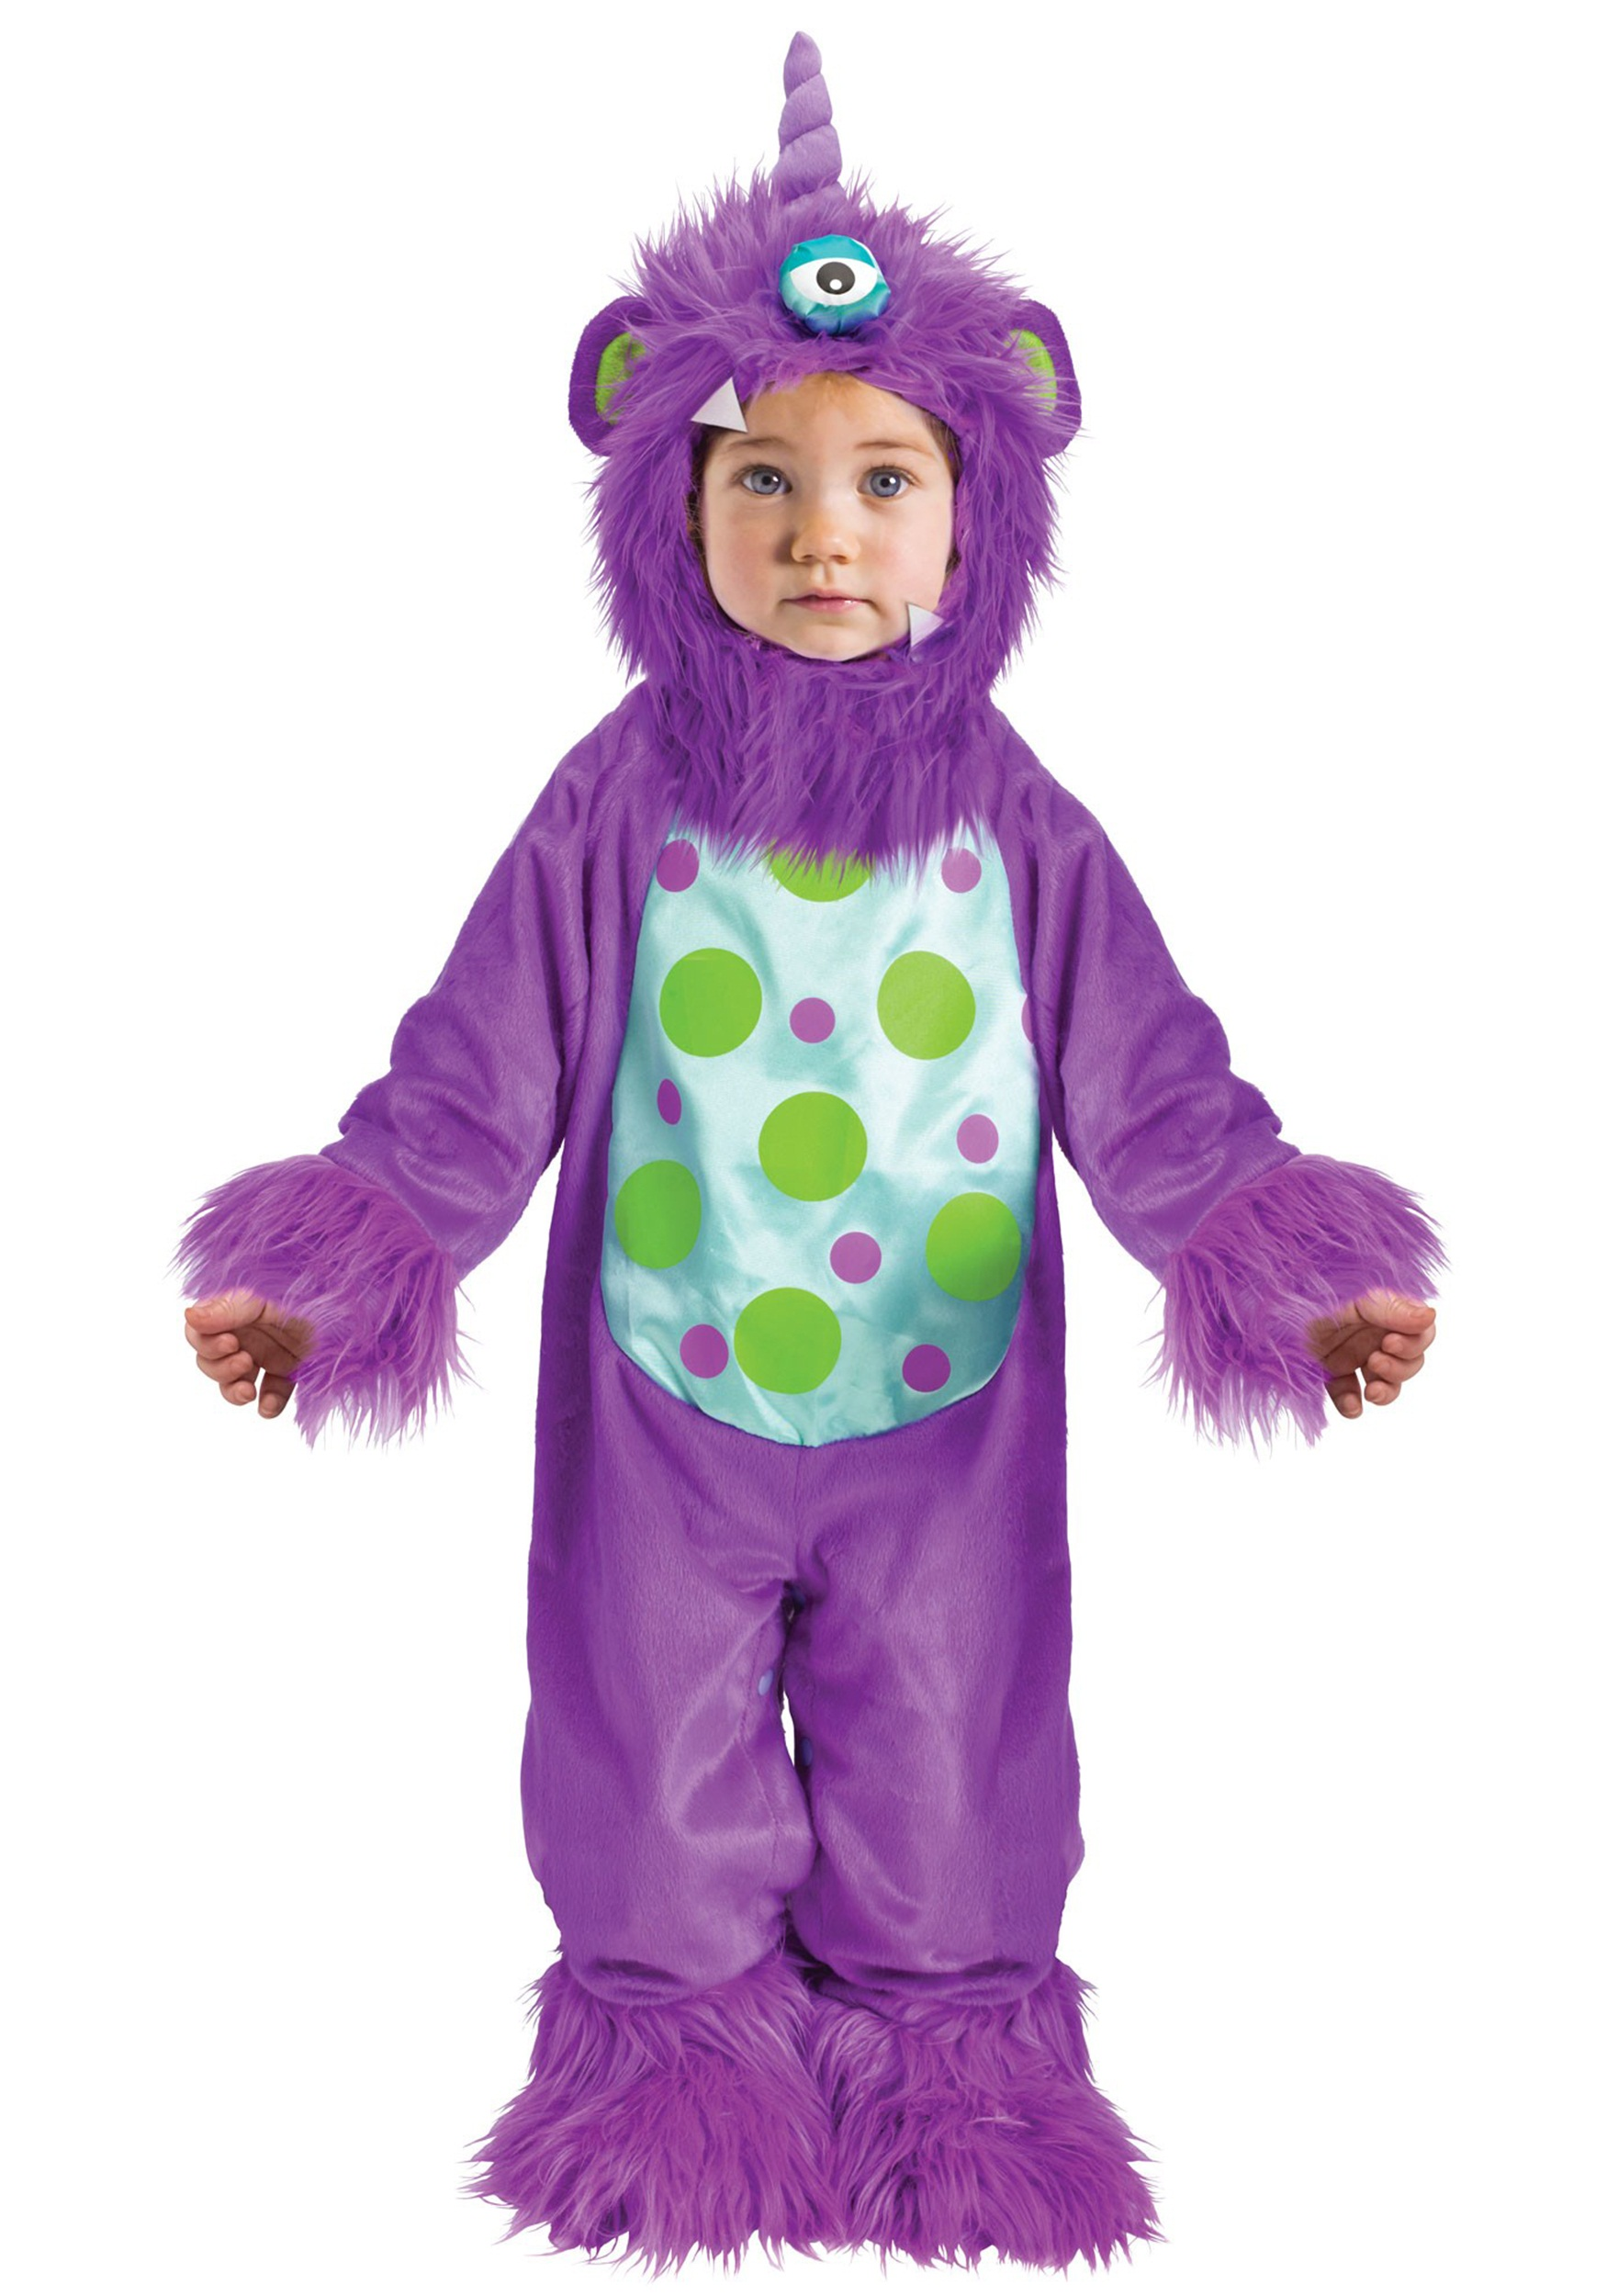 liu0027l monster purple costume sc 1 st halloween costumes